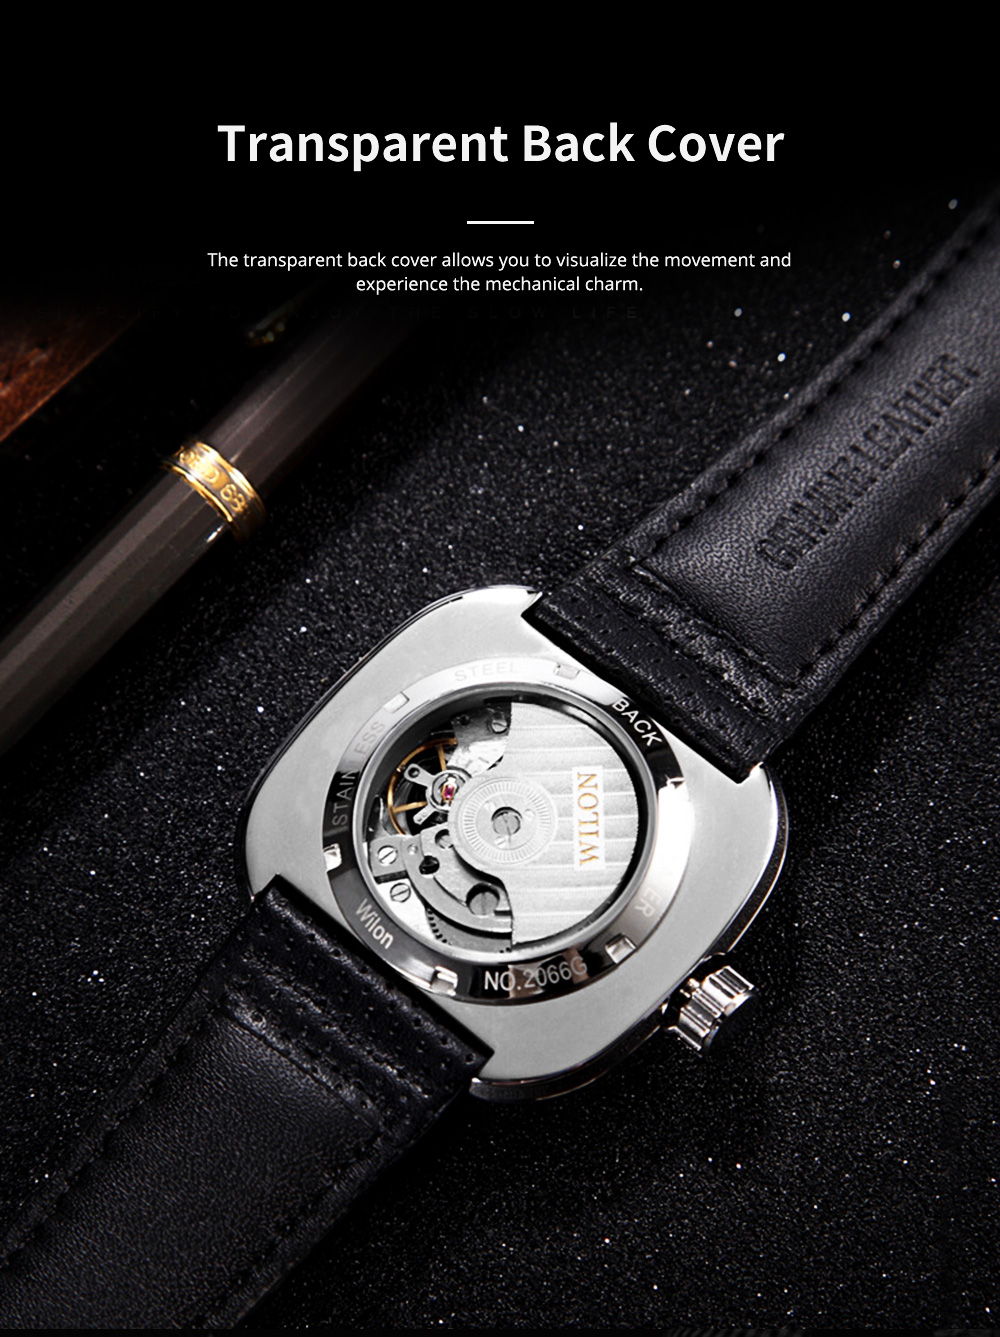 Youth's Watch Square Automatic Mechanical Watch Transparent Hollow Wrist Watch With Genuine Leather Strap 3